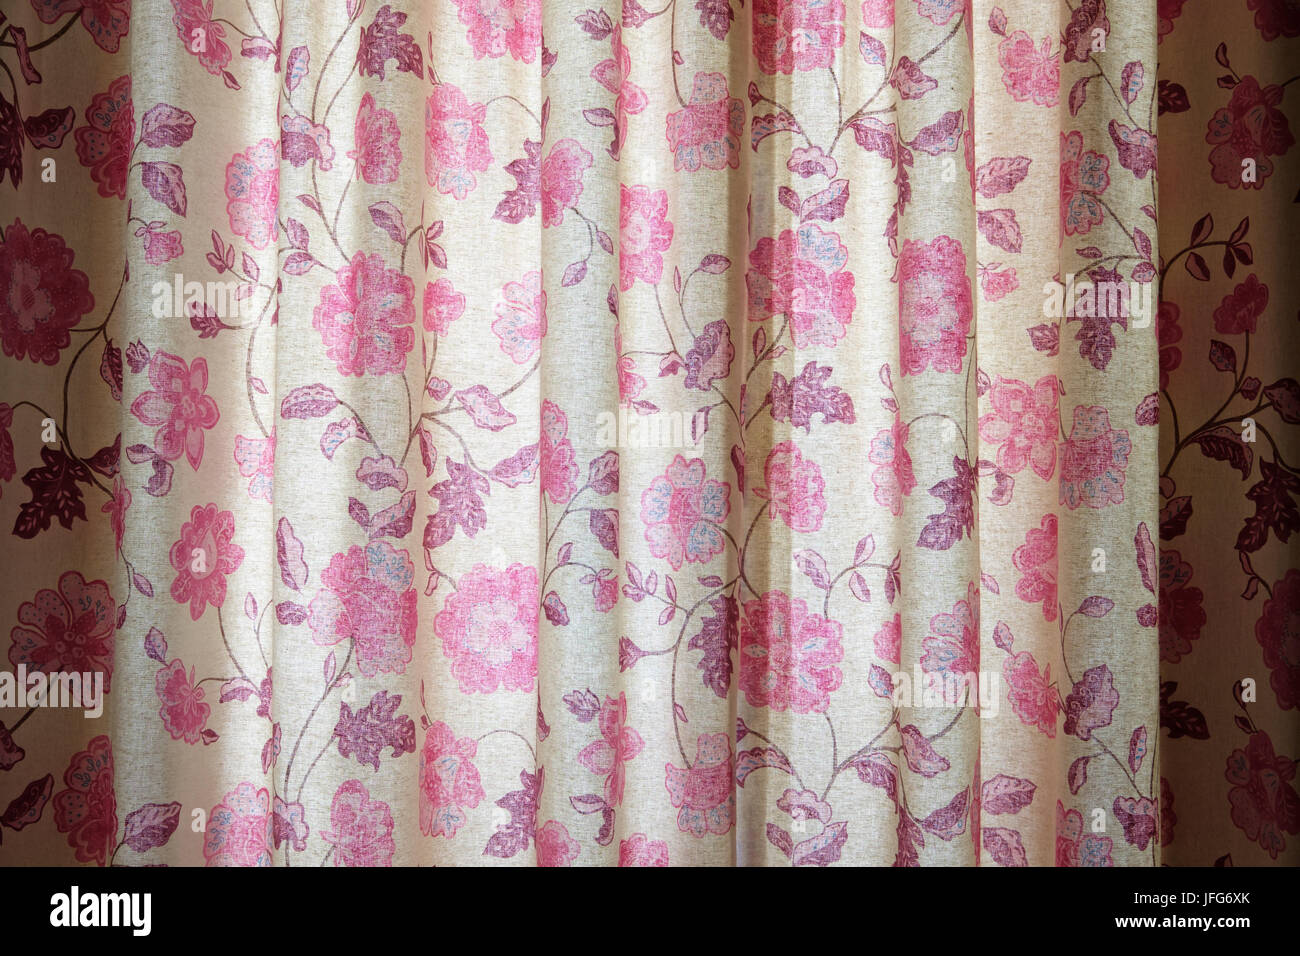 Curtains with pink floral pattern - Stock Image